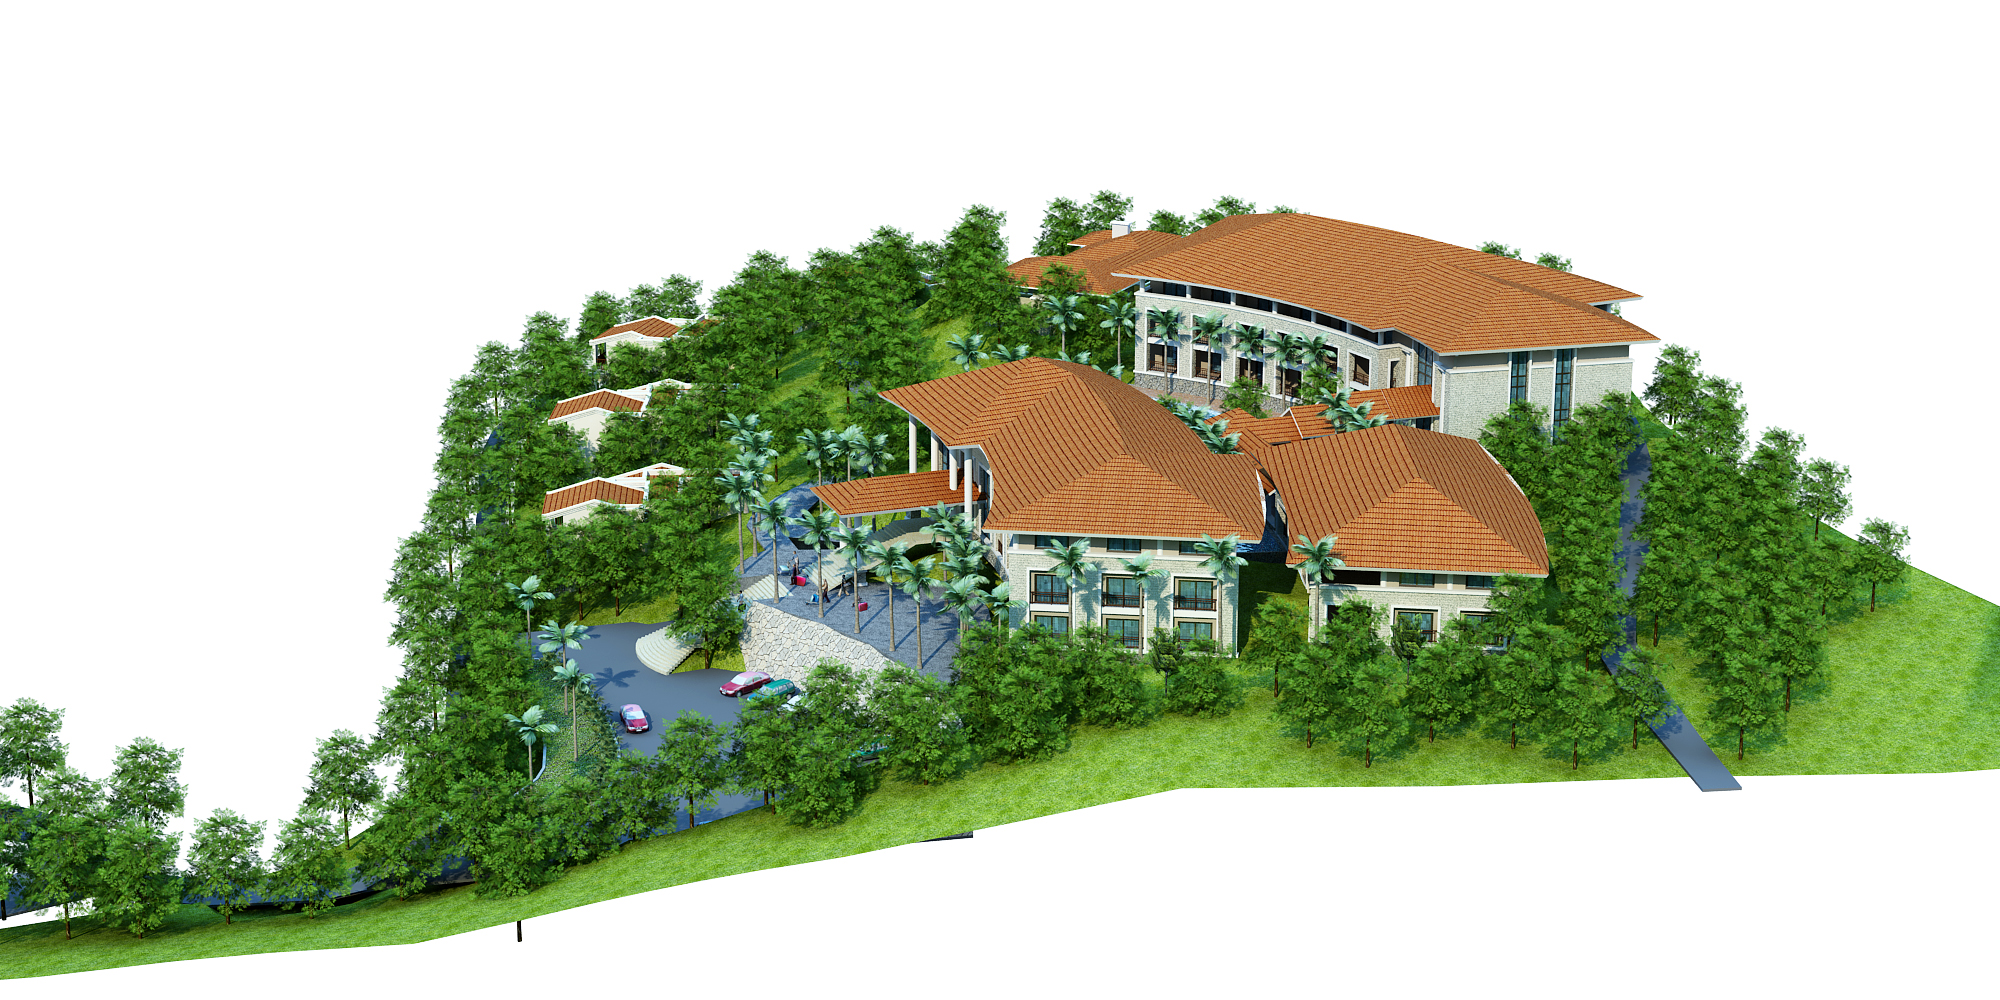 moutain resort hotel 3d model max other 159071